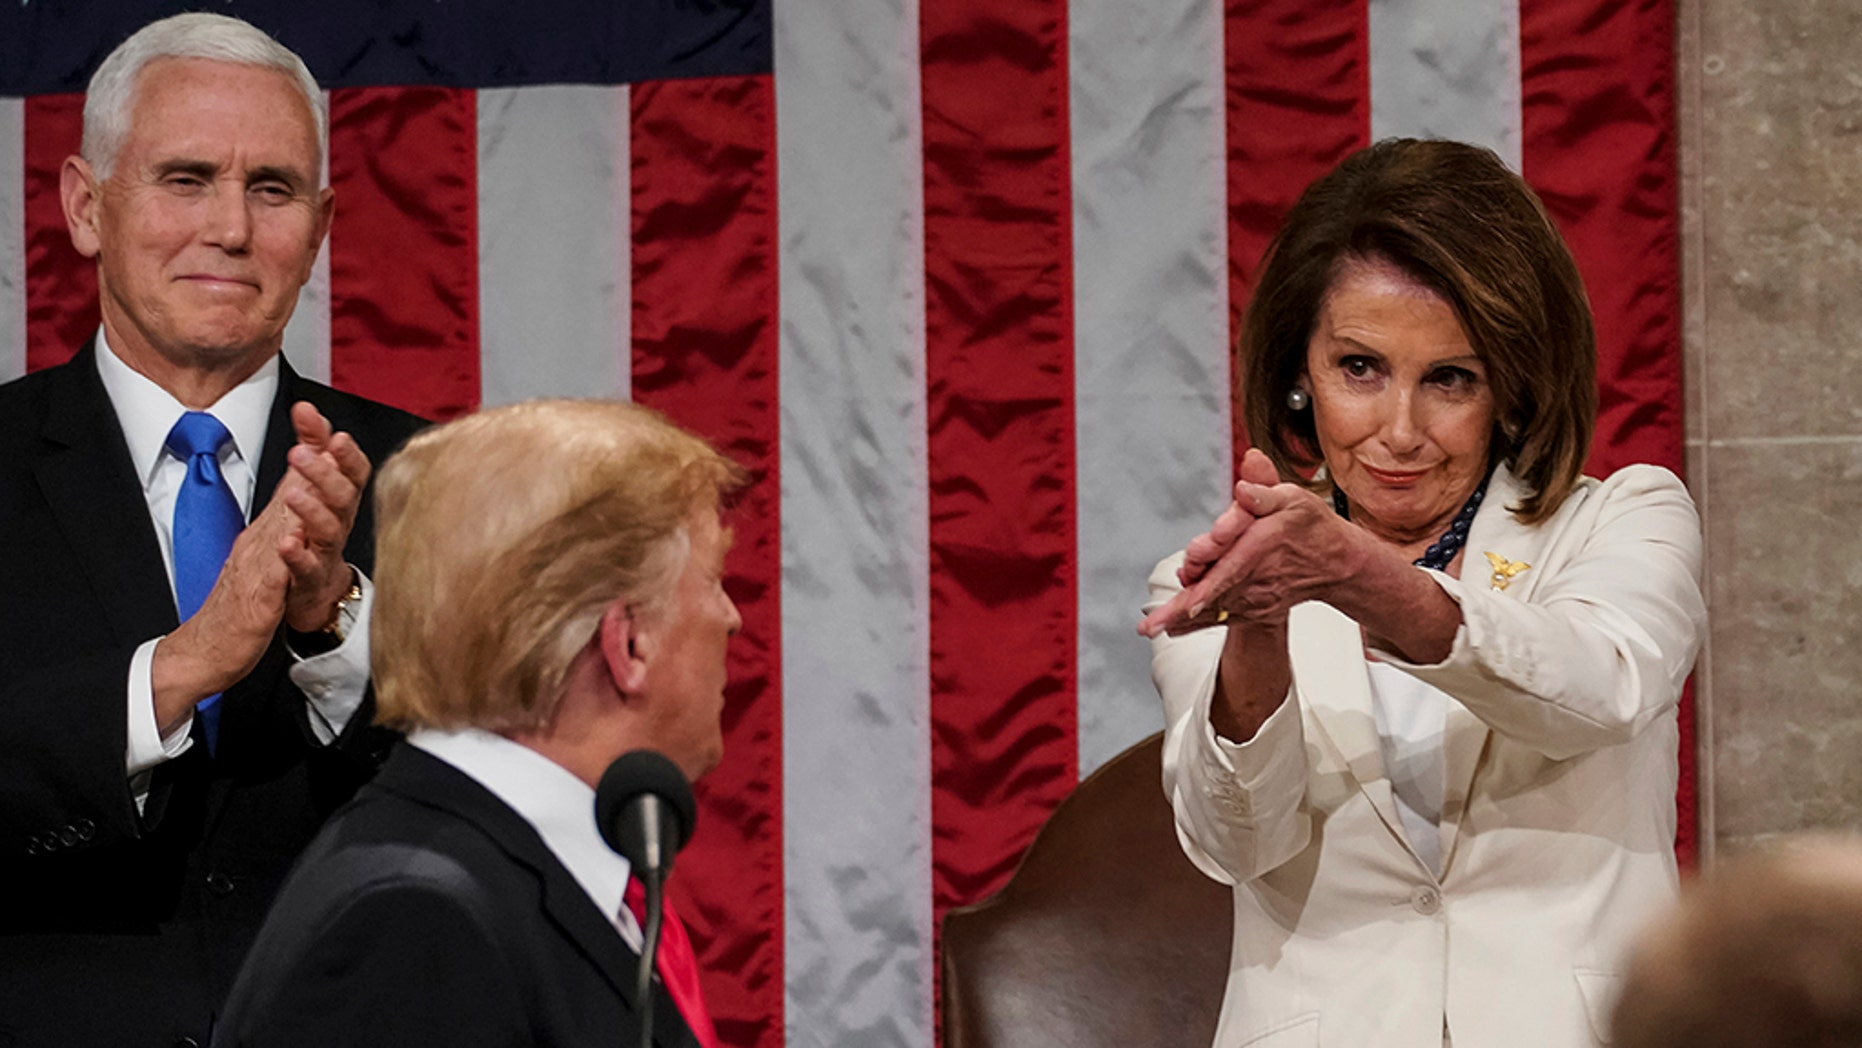 Nancy Pelosi Applauding Donald Trump Becomes Hit Meme On Twitter